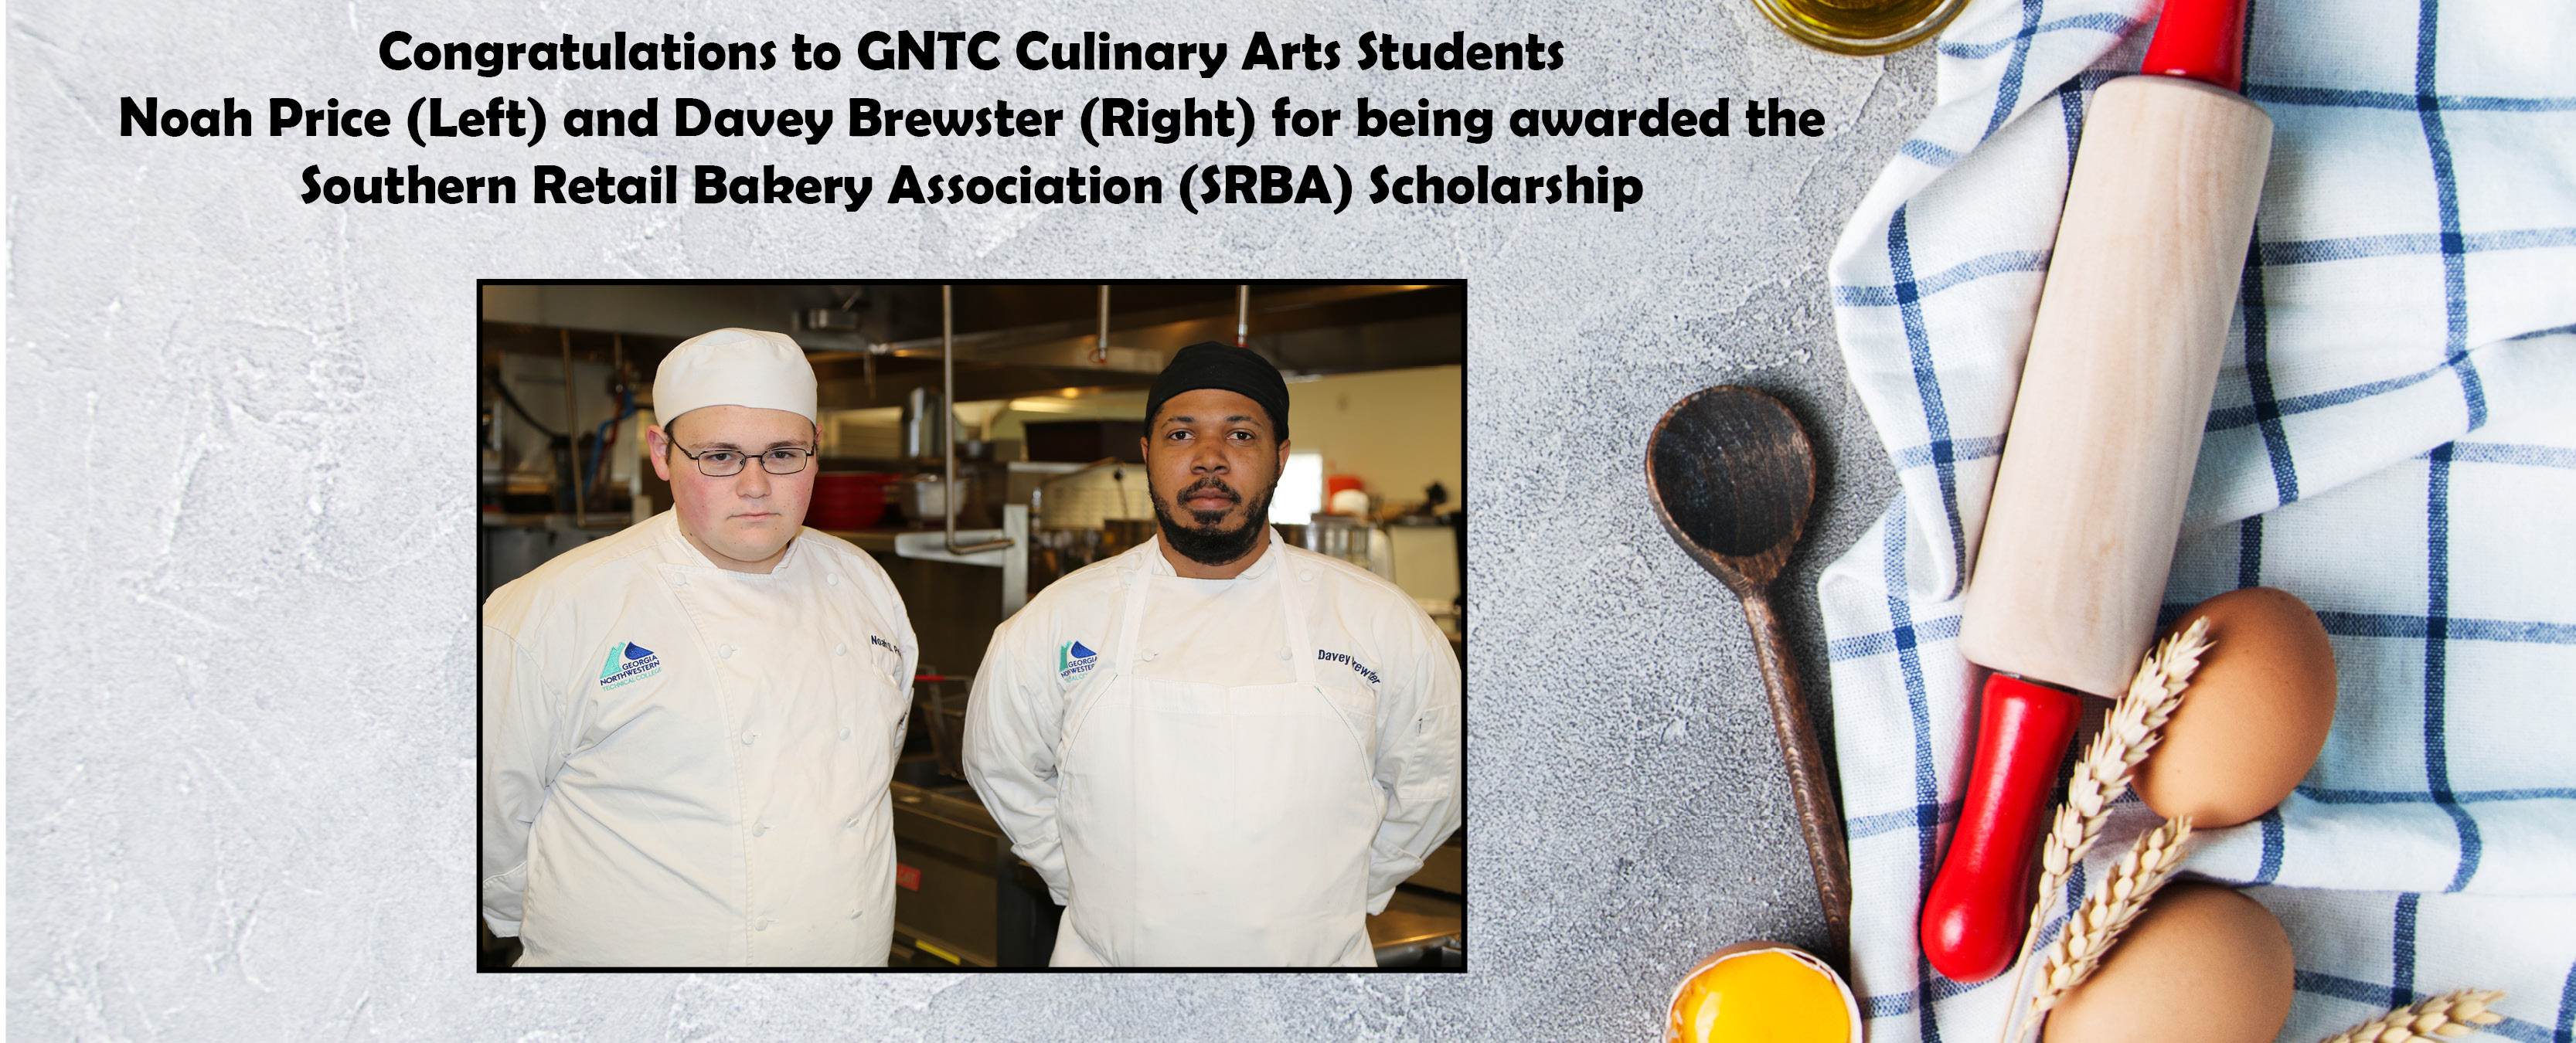 Culinary Arts Students (males) in aprons and chef hats pose.  There is also a rolling pin to the side, cracked and uncracked eggs and a white kitchen towel with blue stripes.